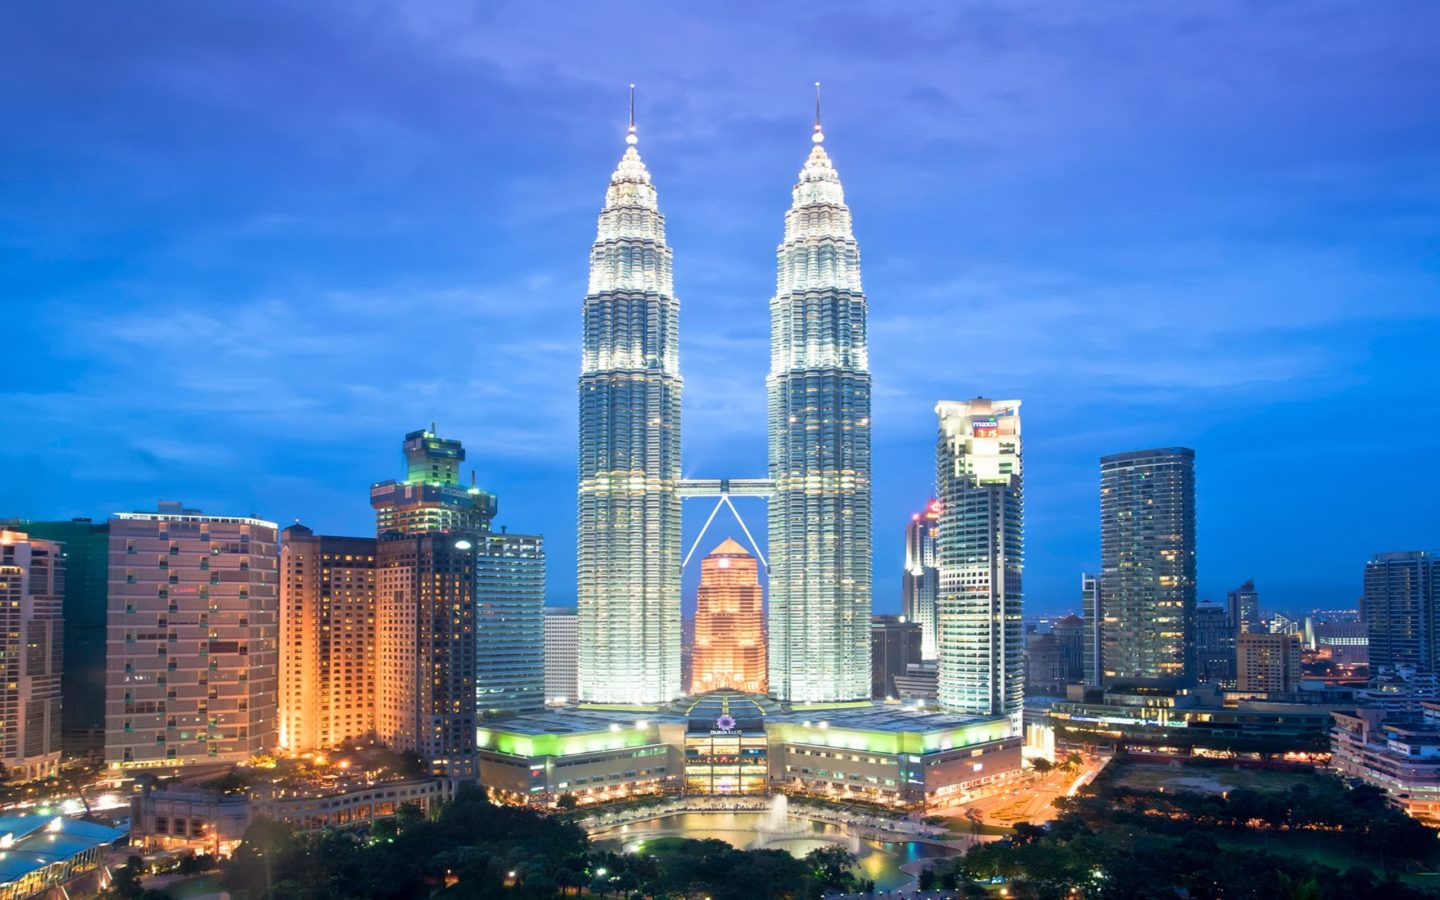 Old Wallpaper Iphone X Petronas Tower Malaysia Best Hd Wallpaper Picture